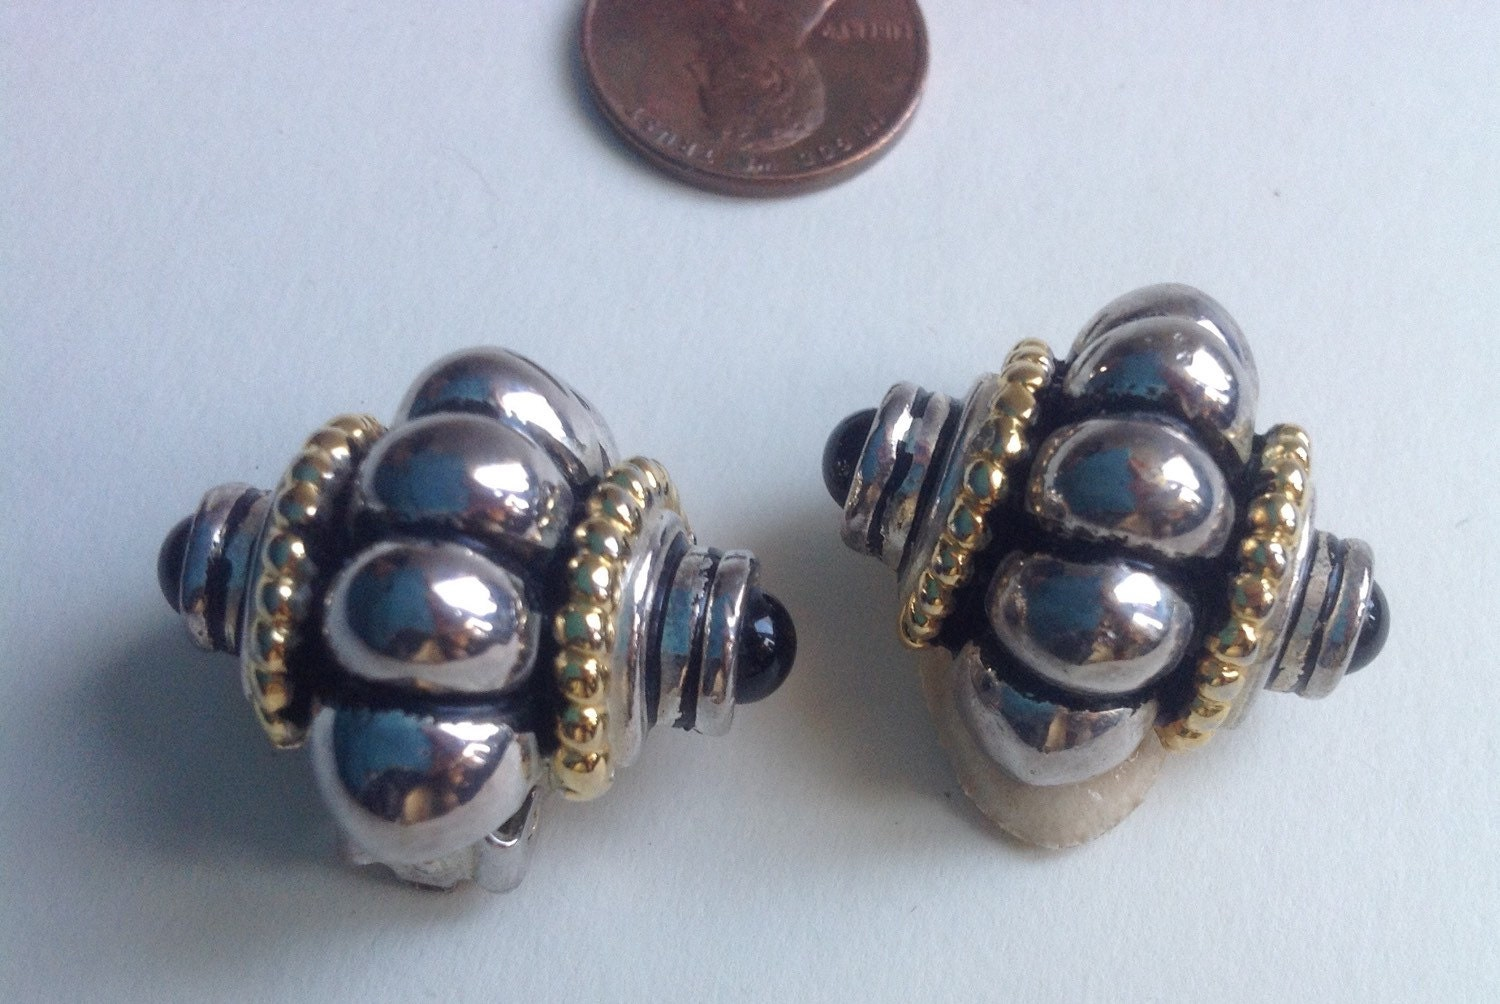 david yurman style cable silver and gold earrings by art4u2buy